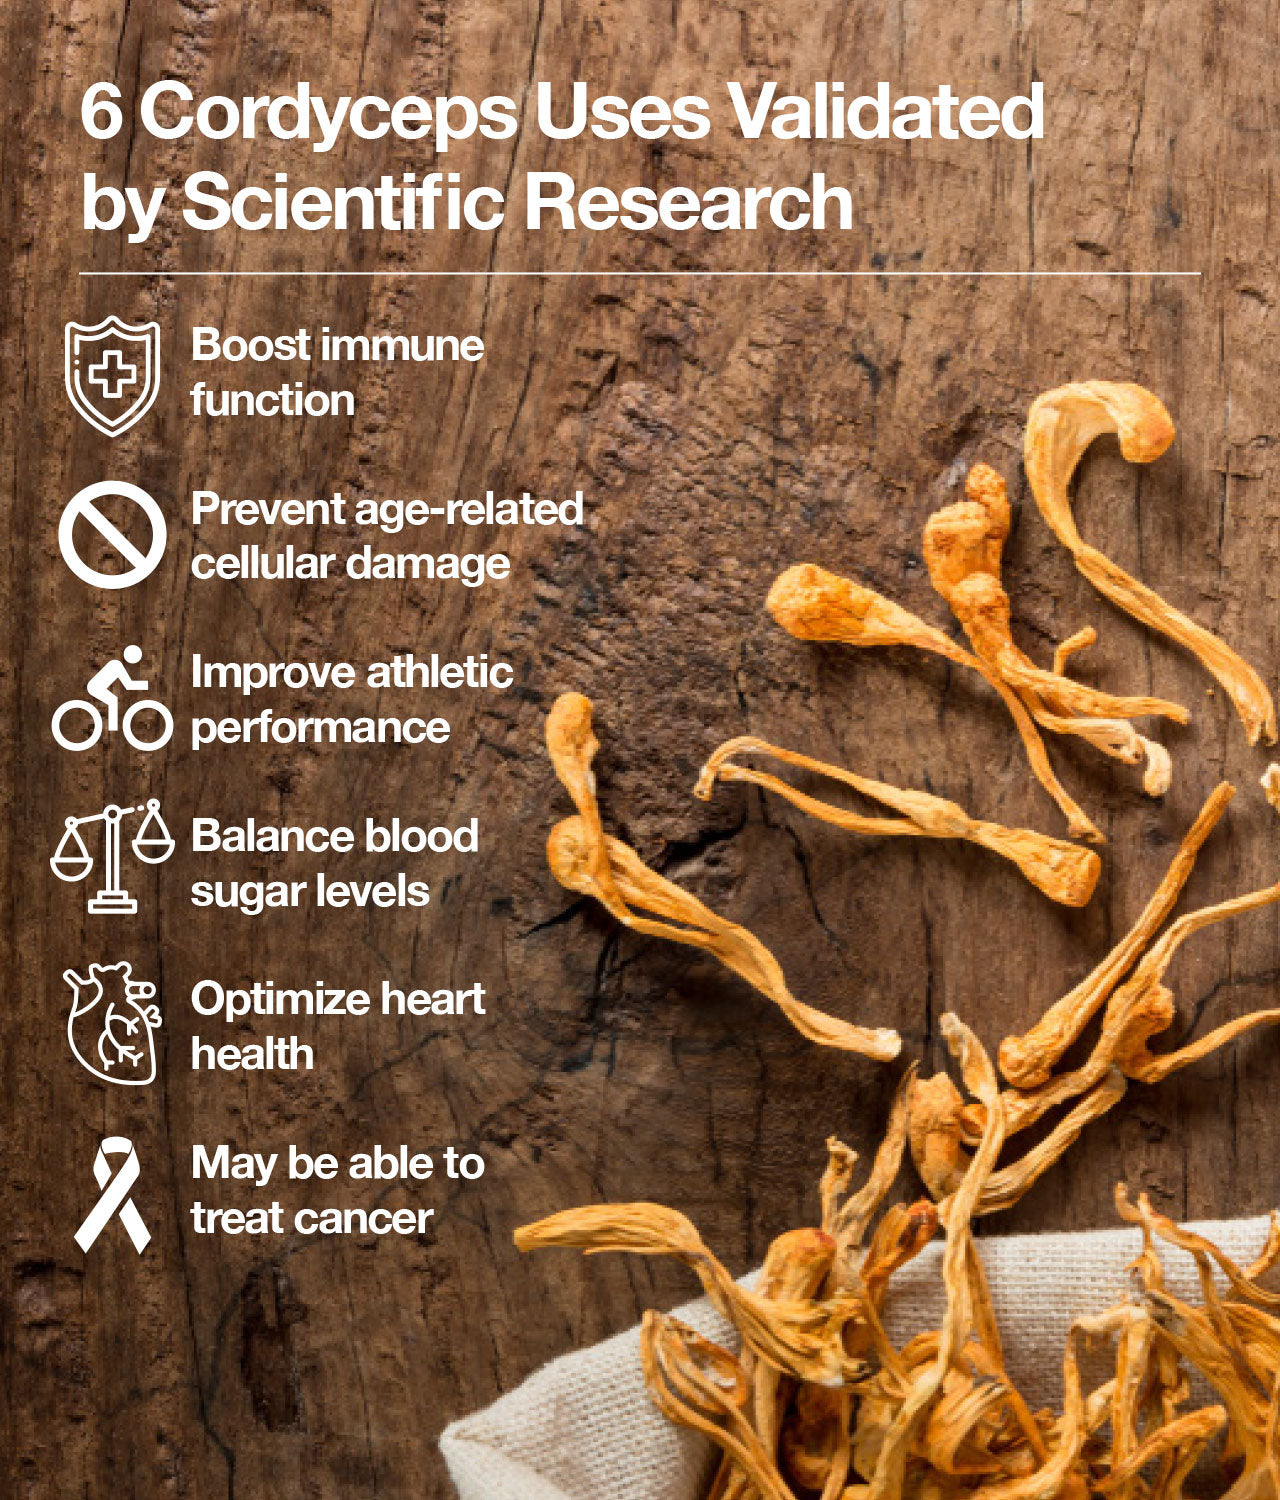 6 Cordyceps Uses Validated by Scientific Research